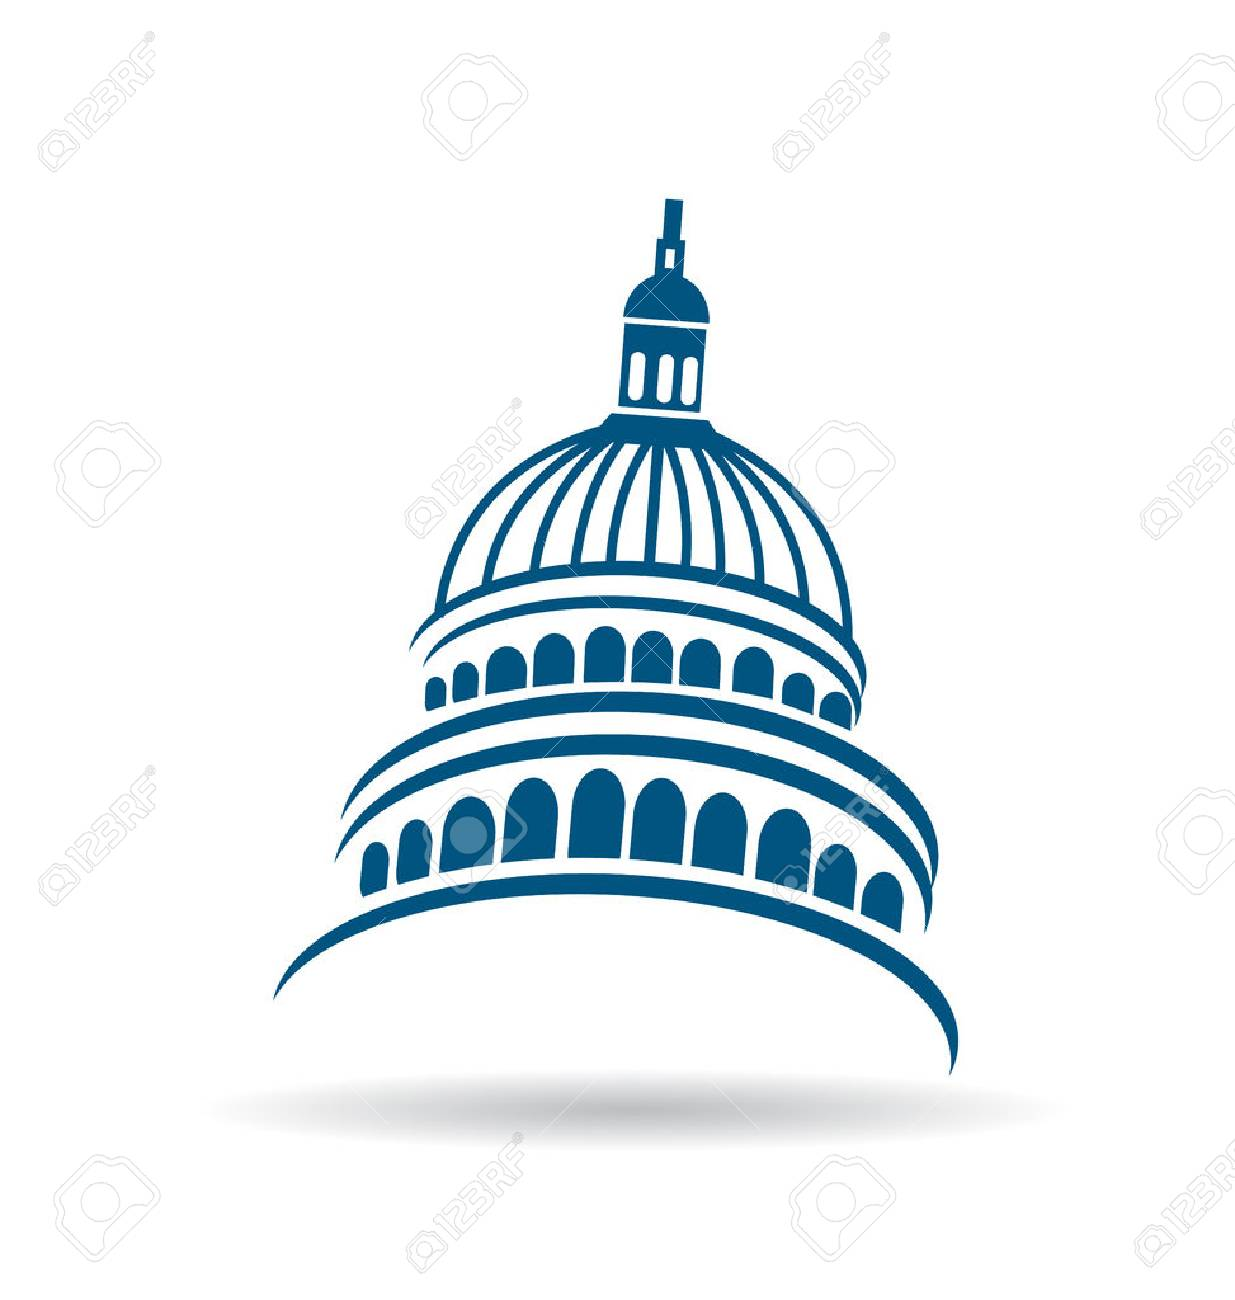 usa capitol building icon royalty free cliparts vectors and stock rh 123rf com austin capitol building vector capitol building vector free